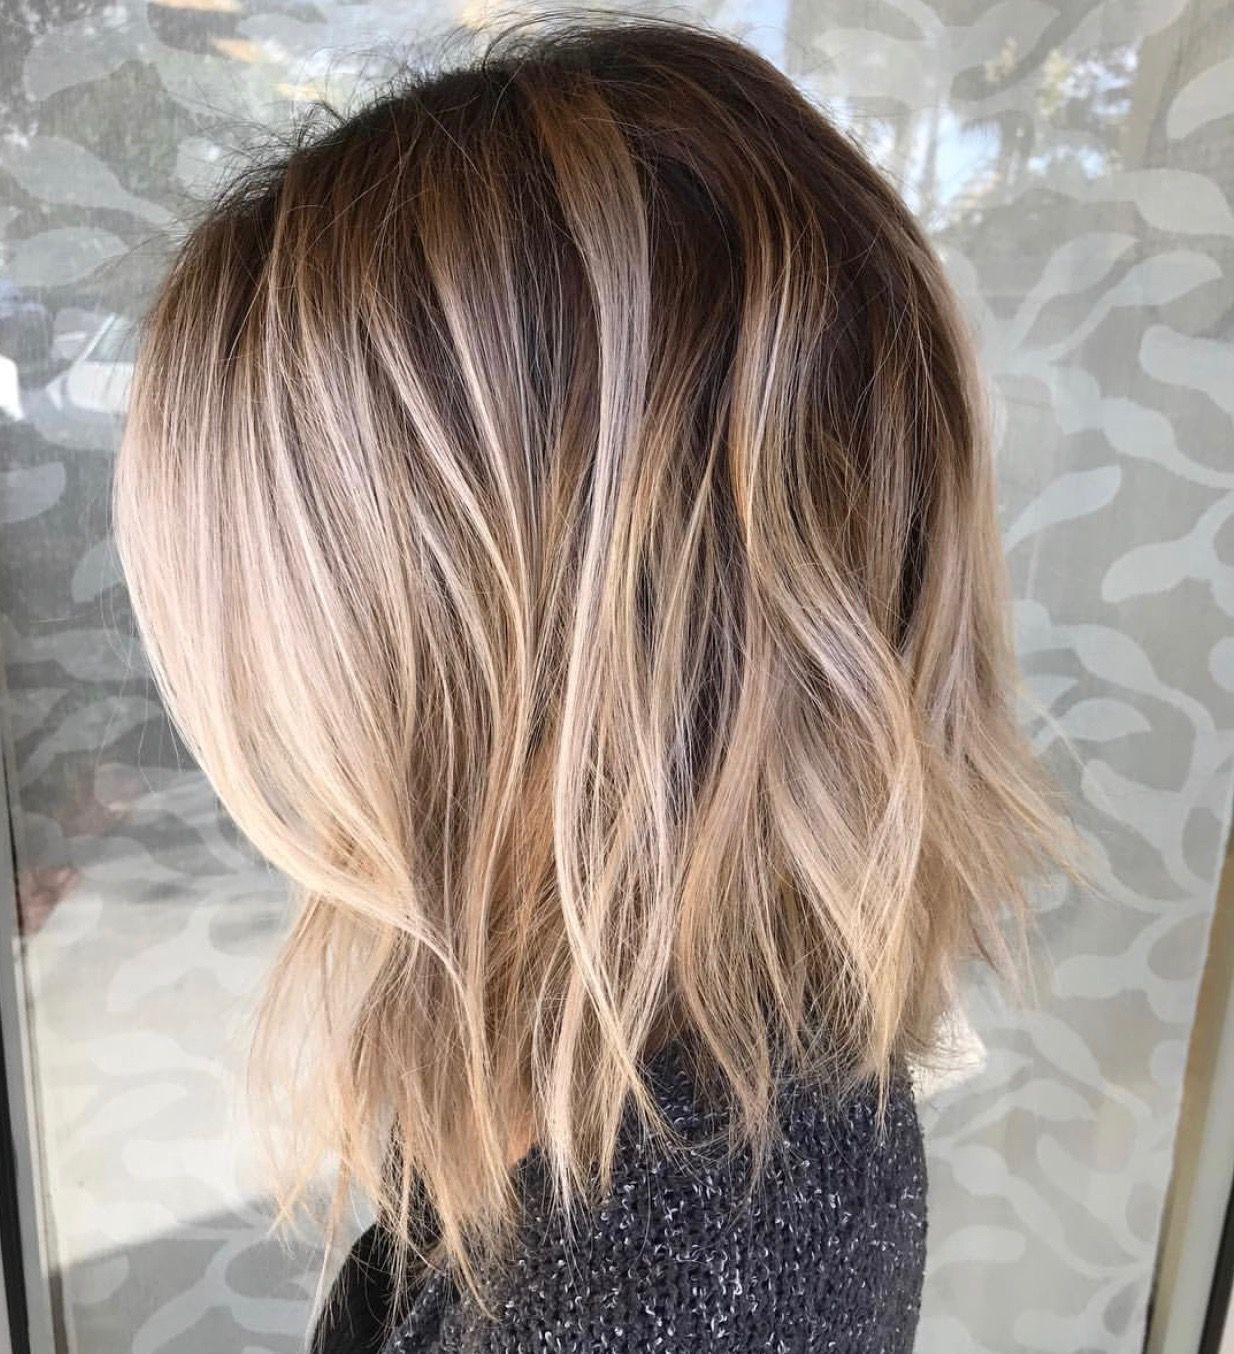 Beautiful Smudged Blended Balayage With The Most Perfect Root Fading Into Blonde Love These Beach Waves A Low Maintenance Hair Thin Hair Haircuts Hair Styles